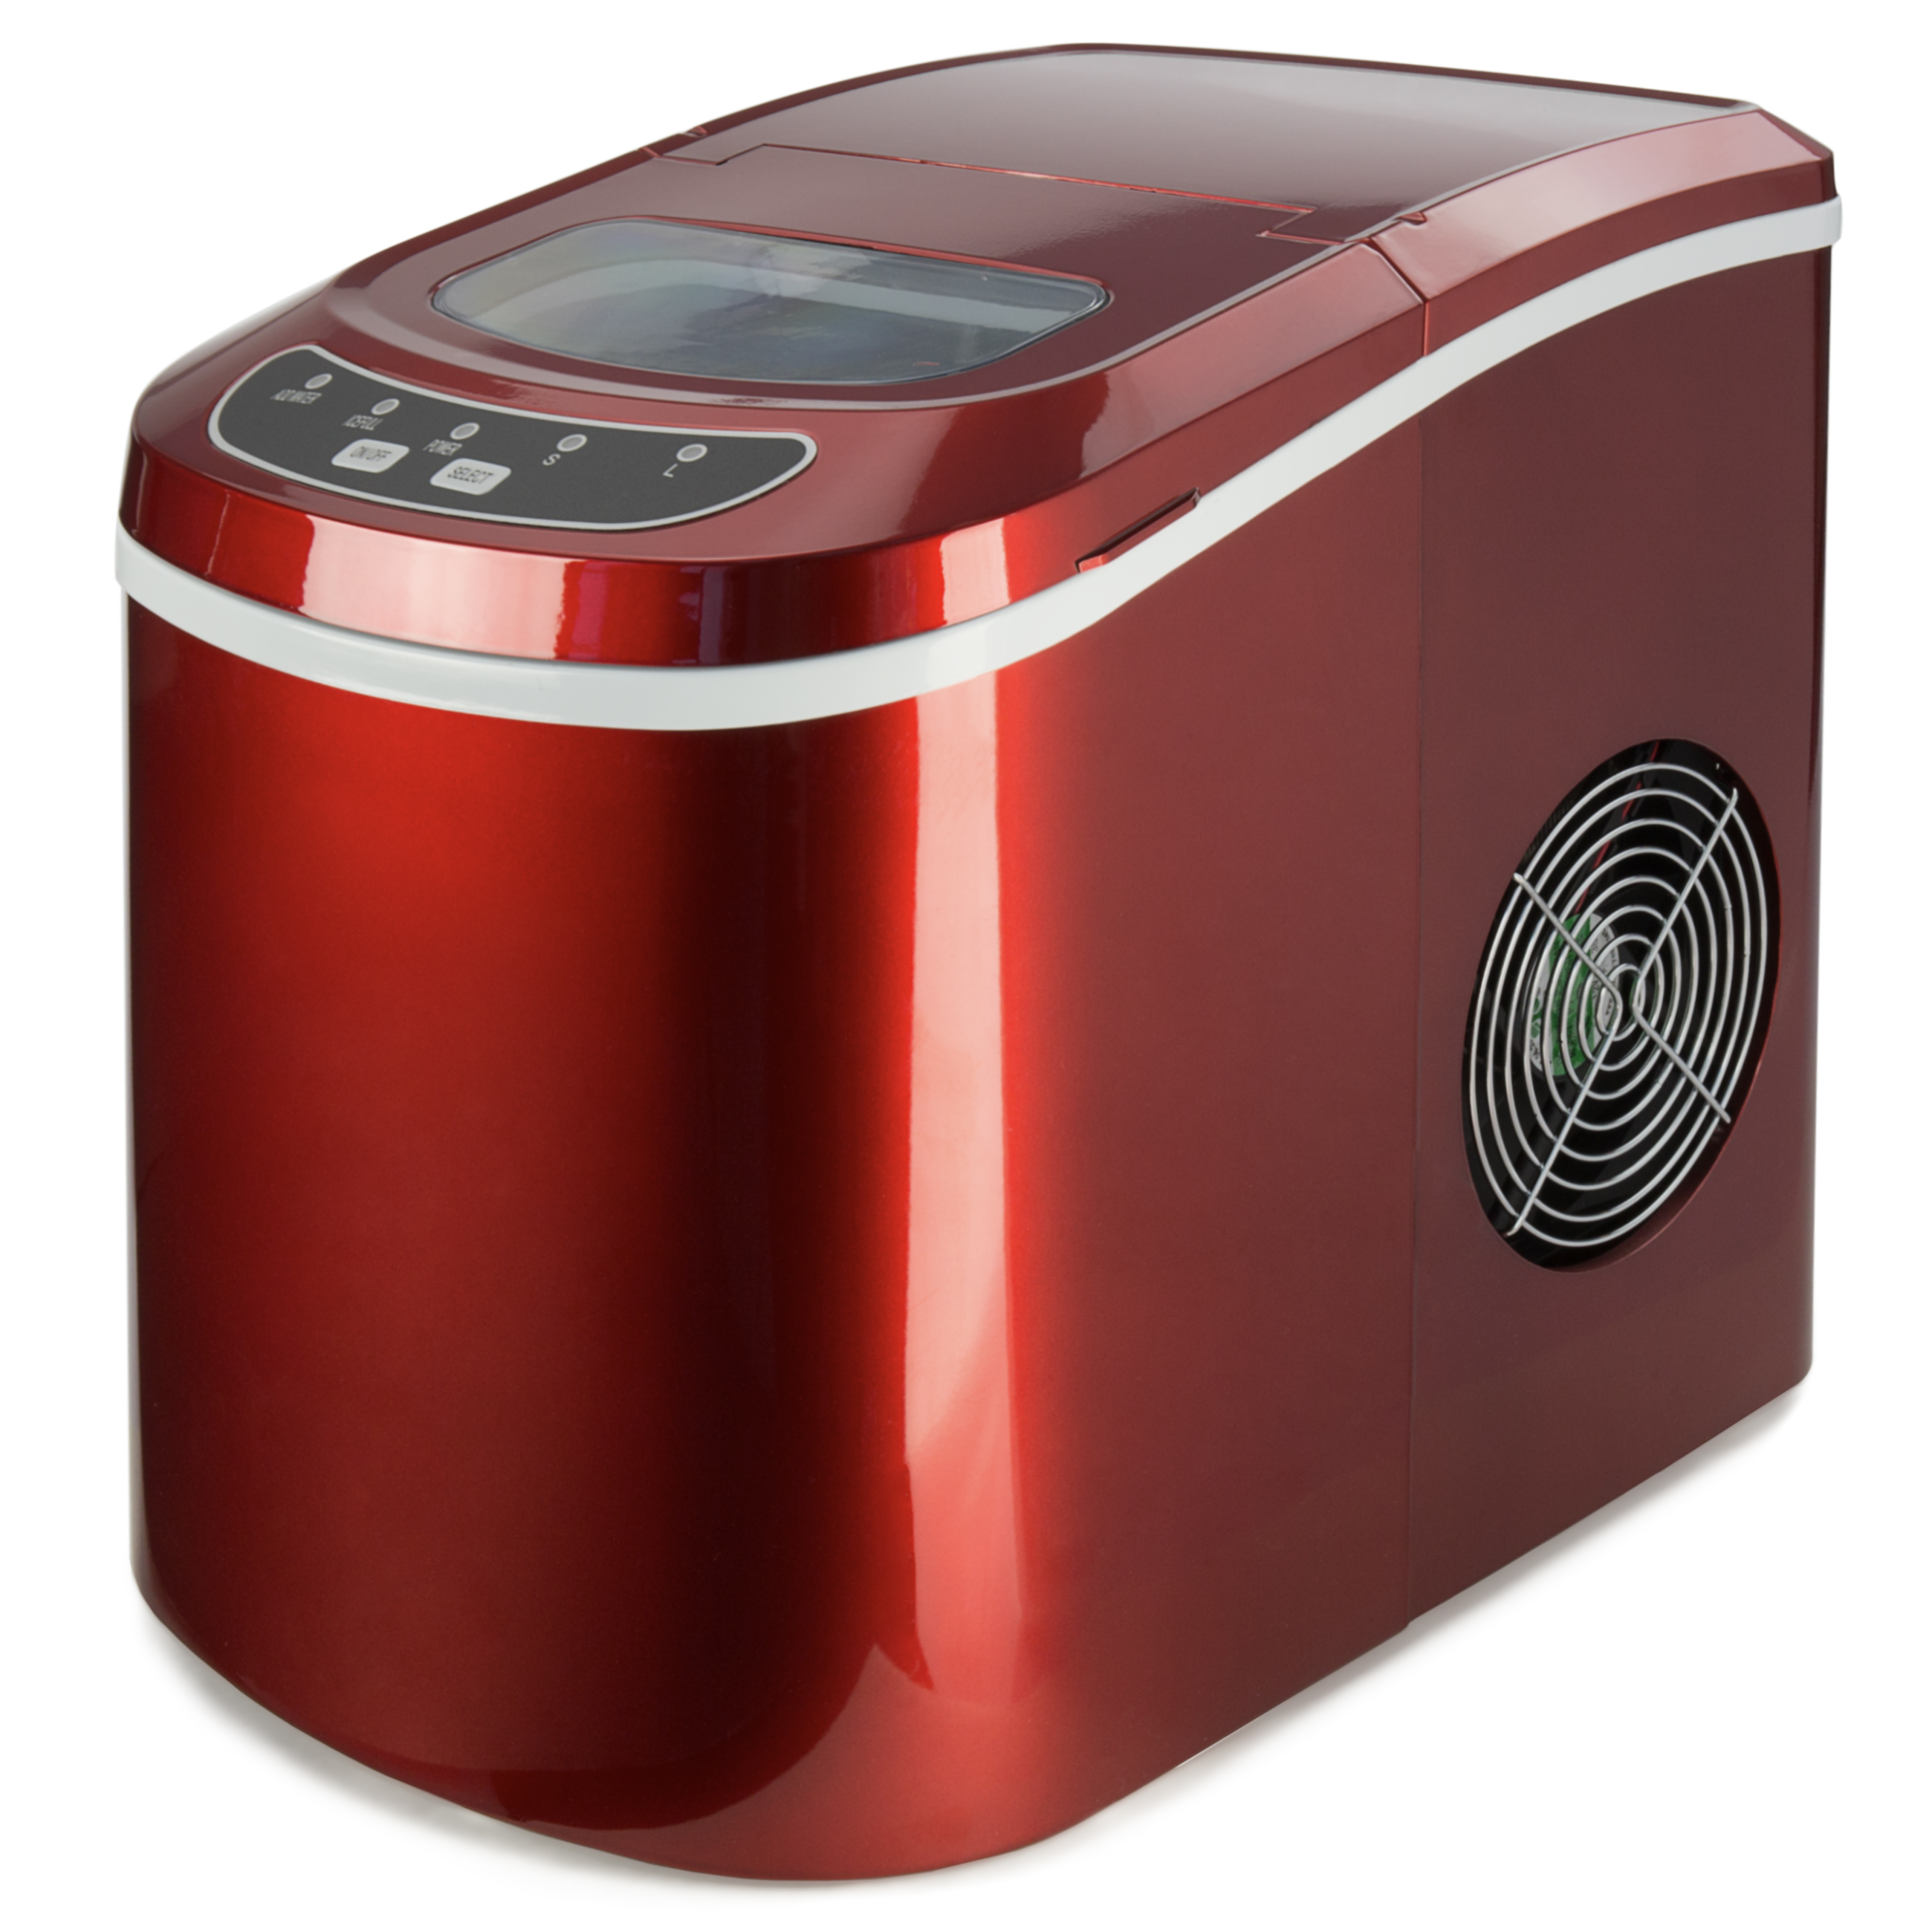 Best Choice Products Compact Digital Ice Maker w/ 2 Cube Sizes (Red, 26 Lbs. of Ice Daily)